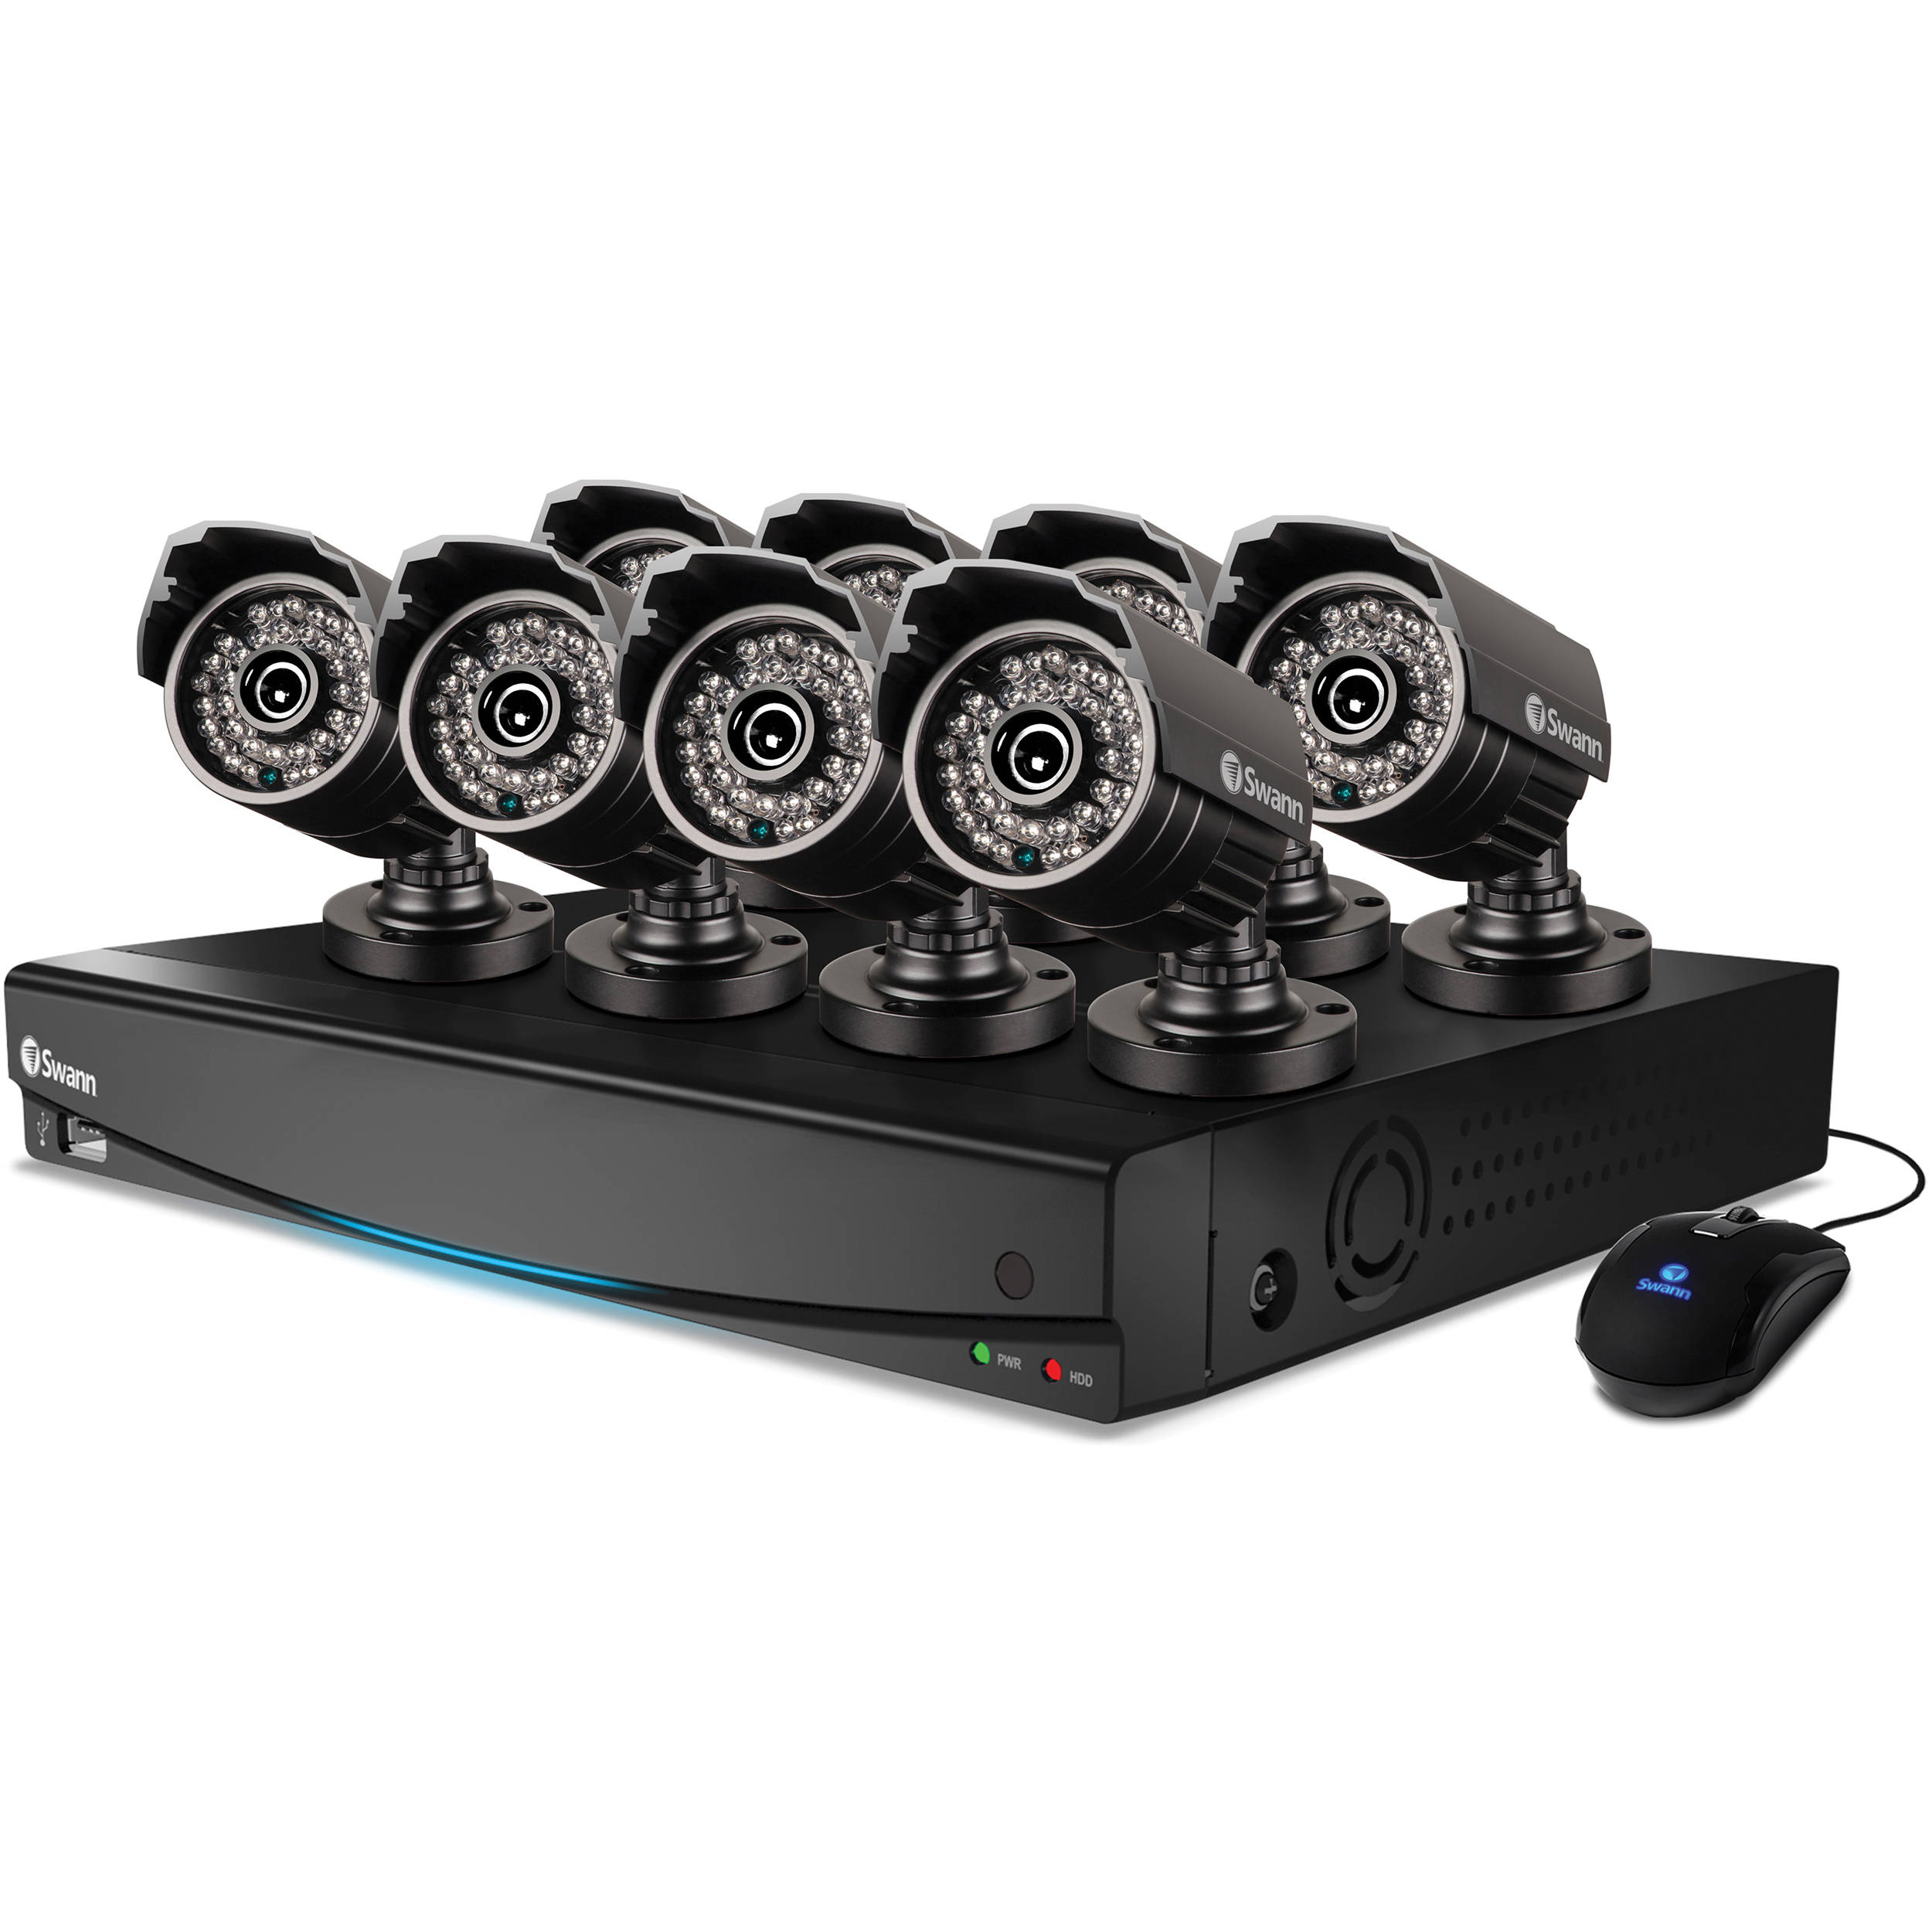 Swann DVR8-3425 8-Channel 960H DVR with 1TB HDD and Eight PRO-735 Cameras